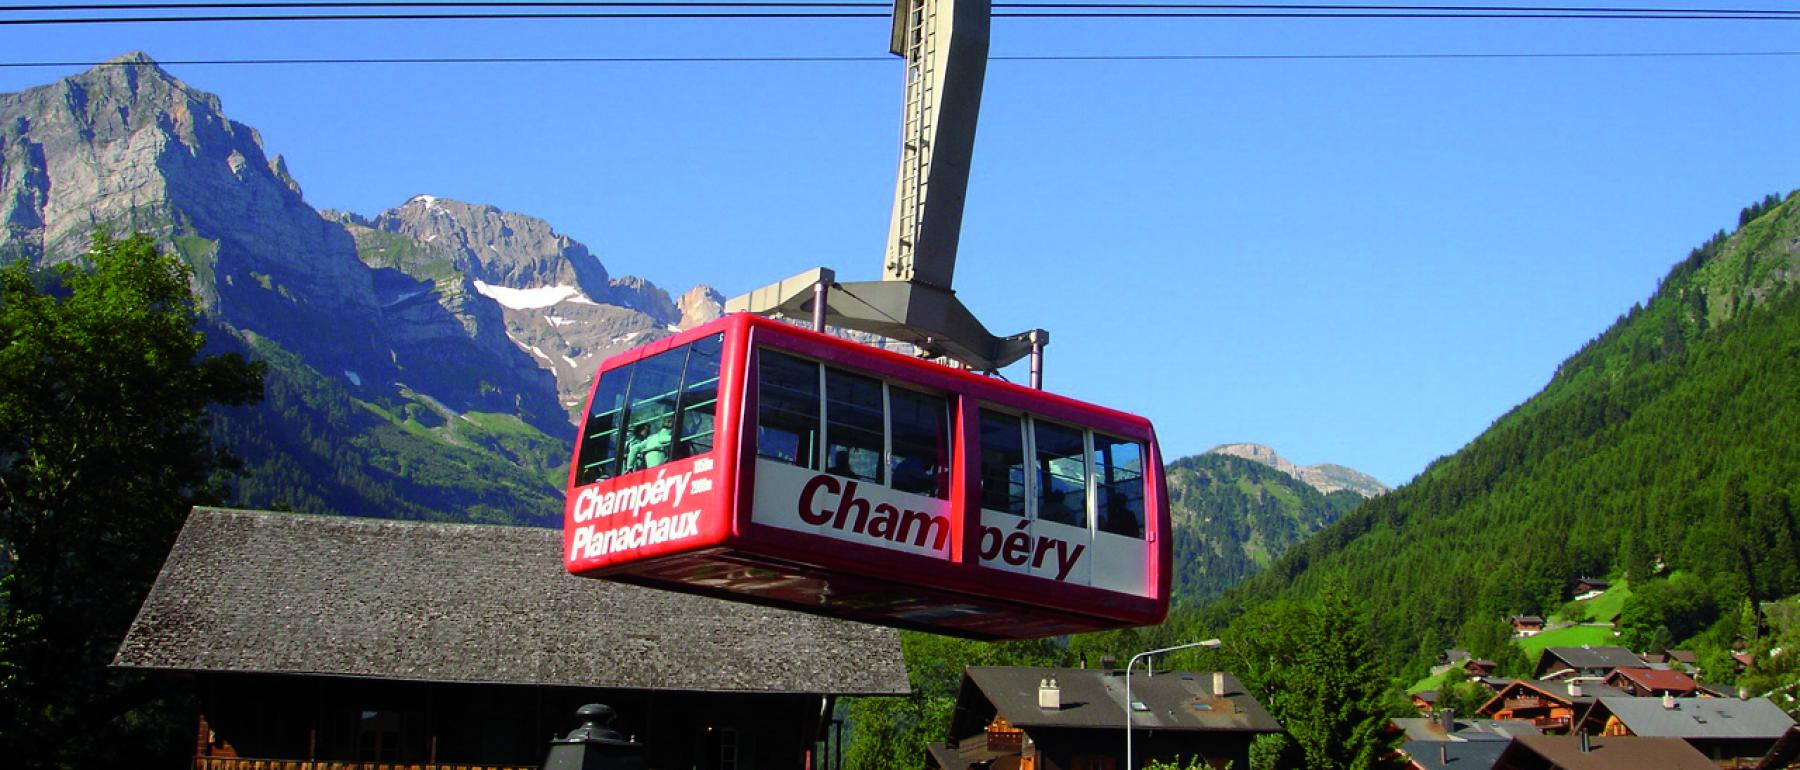 Summer in Champery